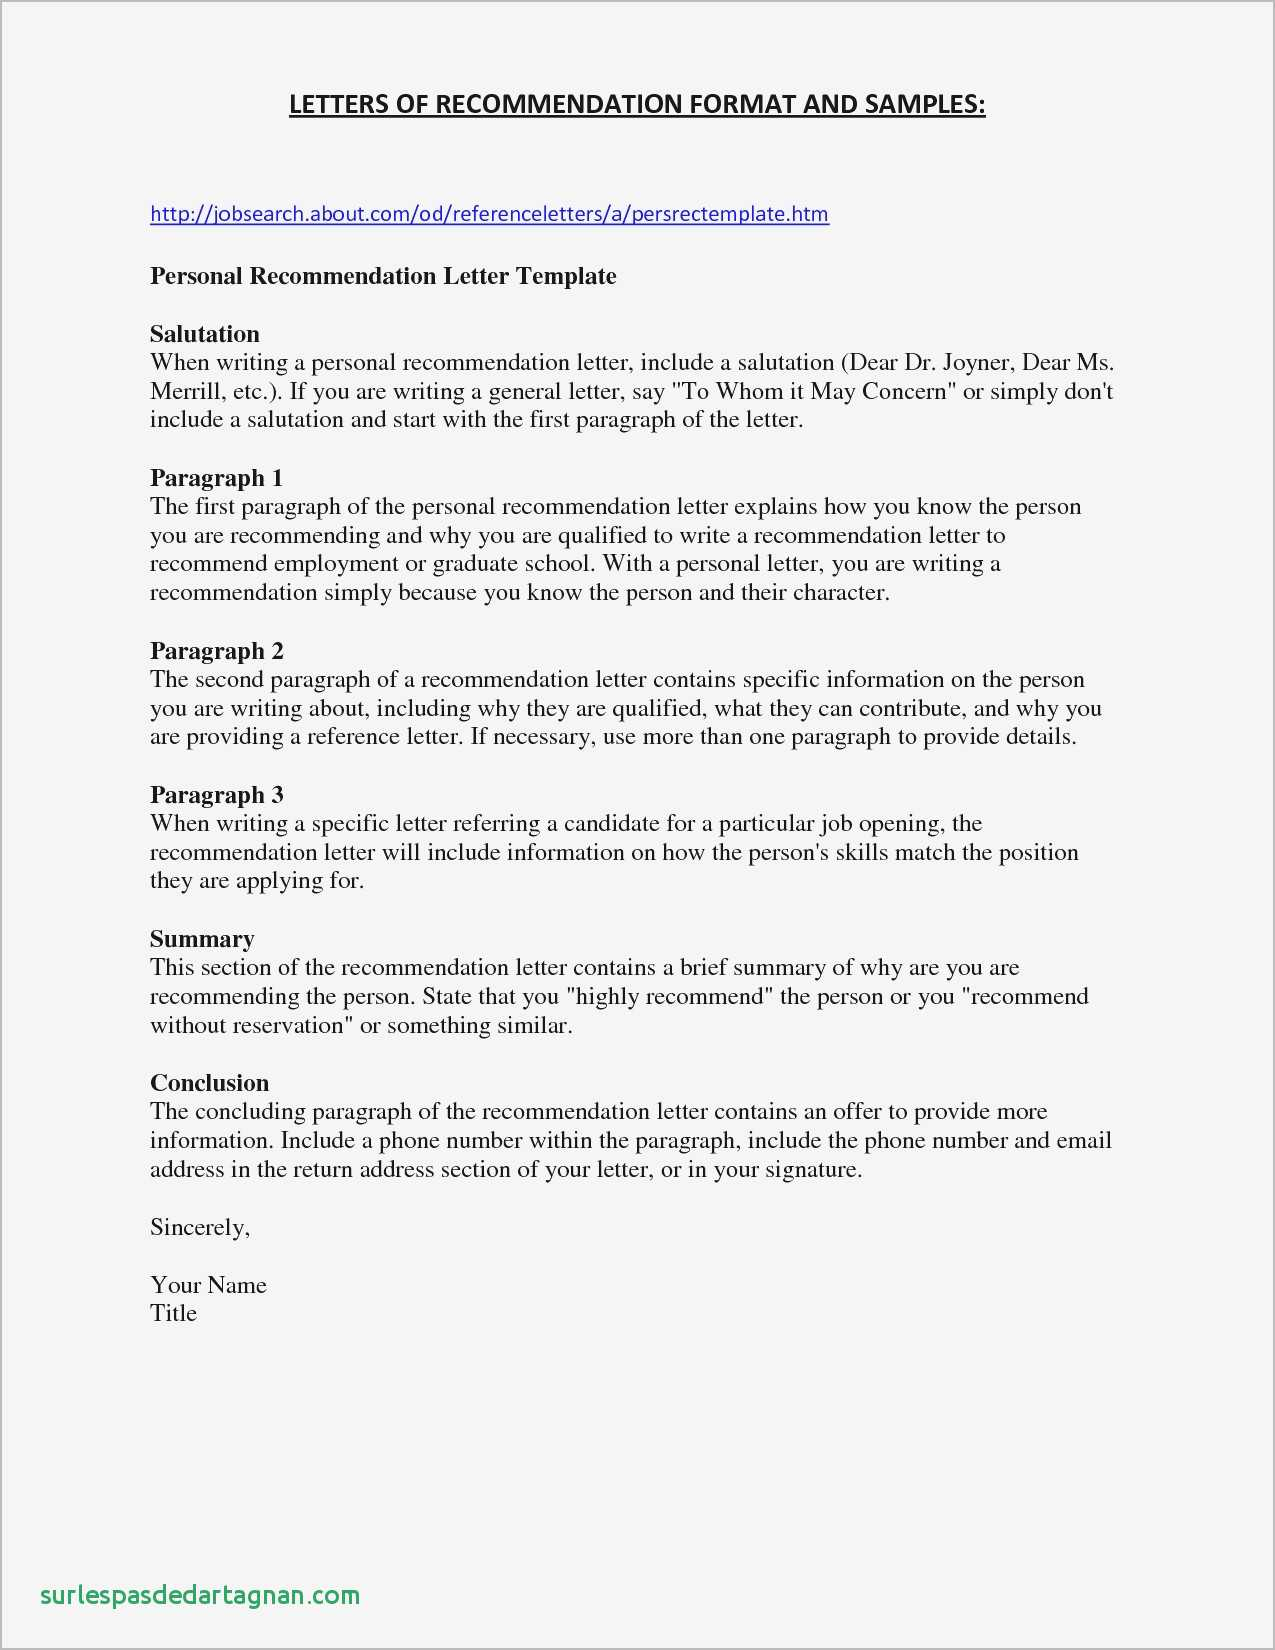 Free Character Reference Letter Template - Sample Personal Reference Letter for A Friend Samples Inspirational